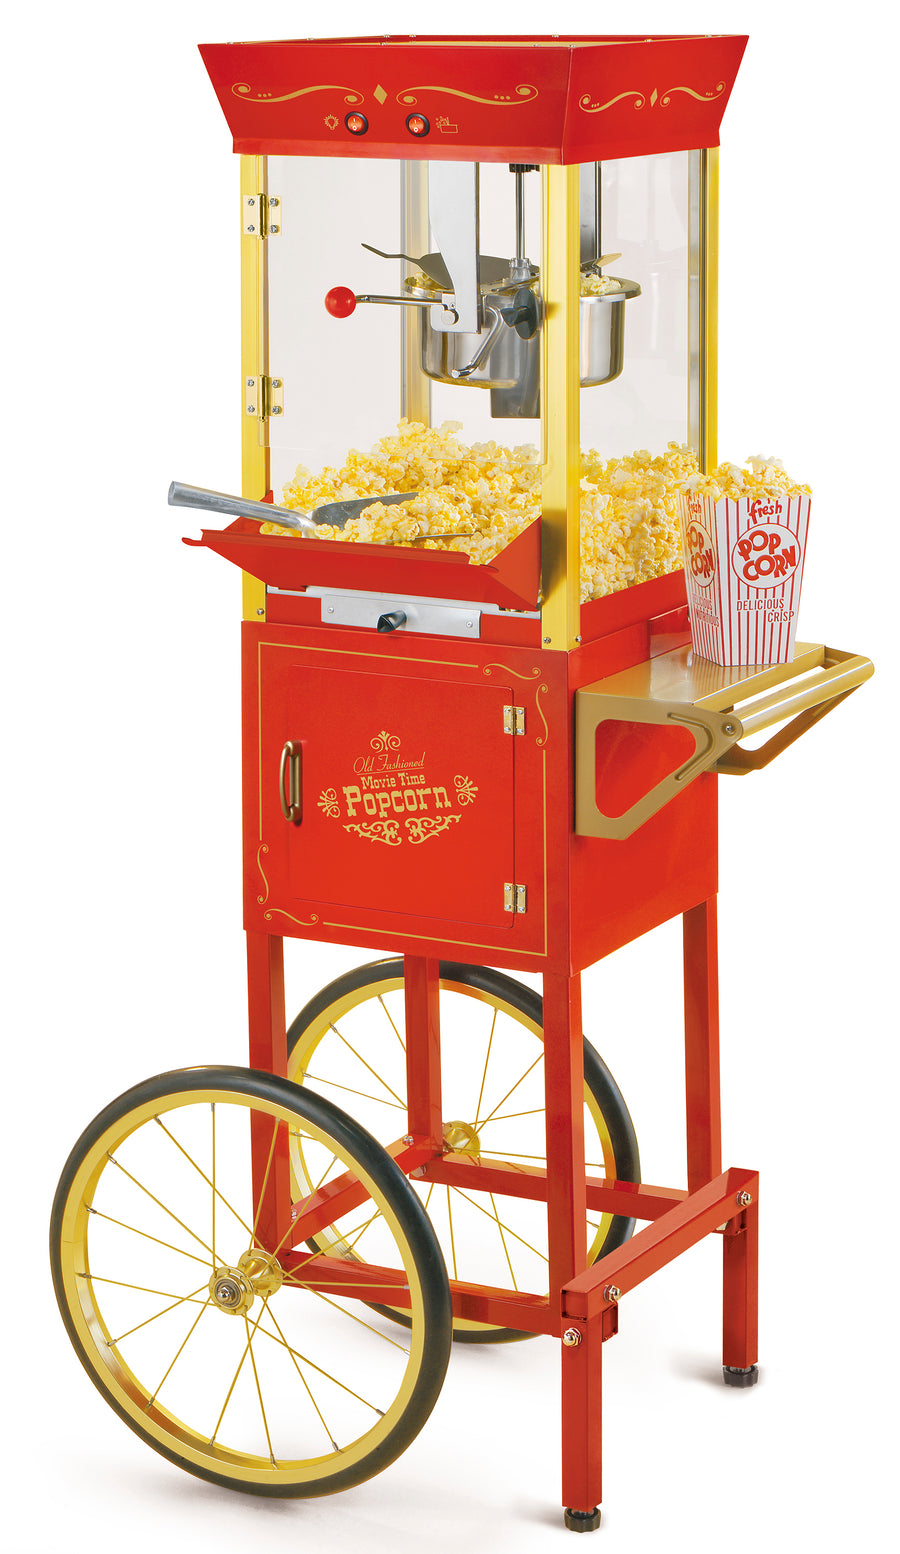 CCP510 Vintage Professional Popcorn Cart - NEW 8-Ounce Kettle - 53 In Tall - Black